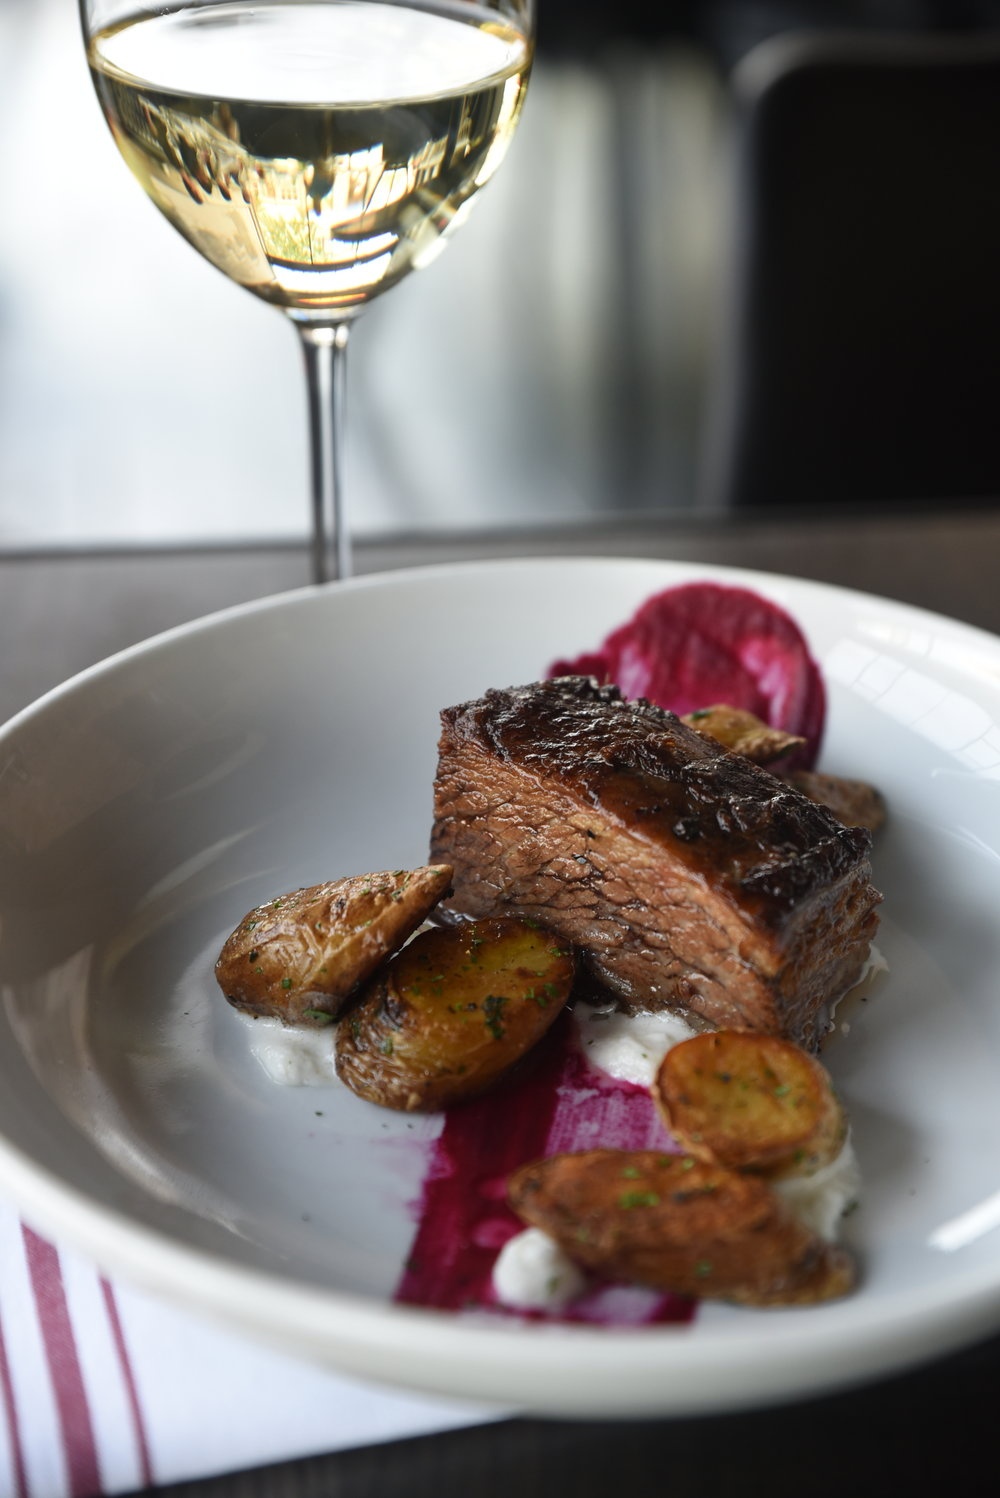 Braised Beef Short Rib - Herb roasted fingerling potatoes, red cabbage puree & horseradish cream.